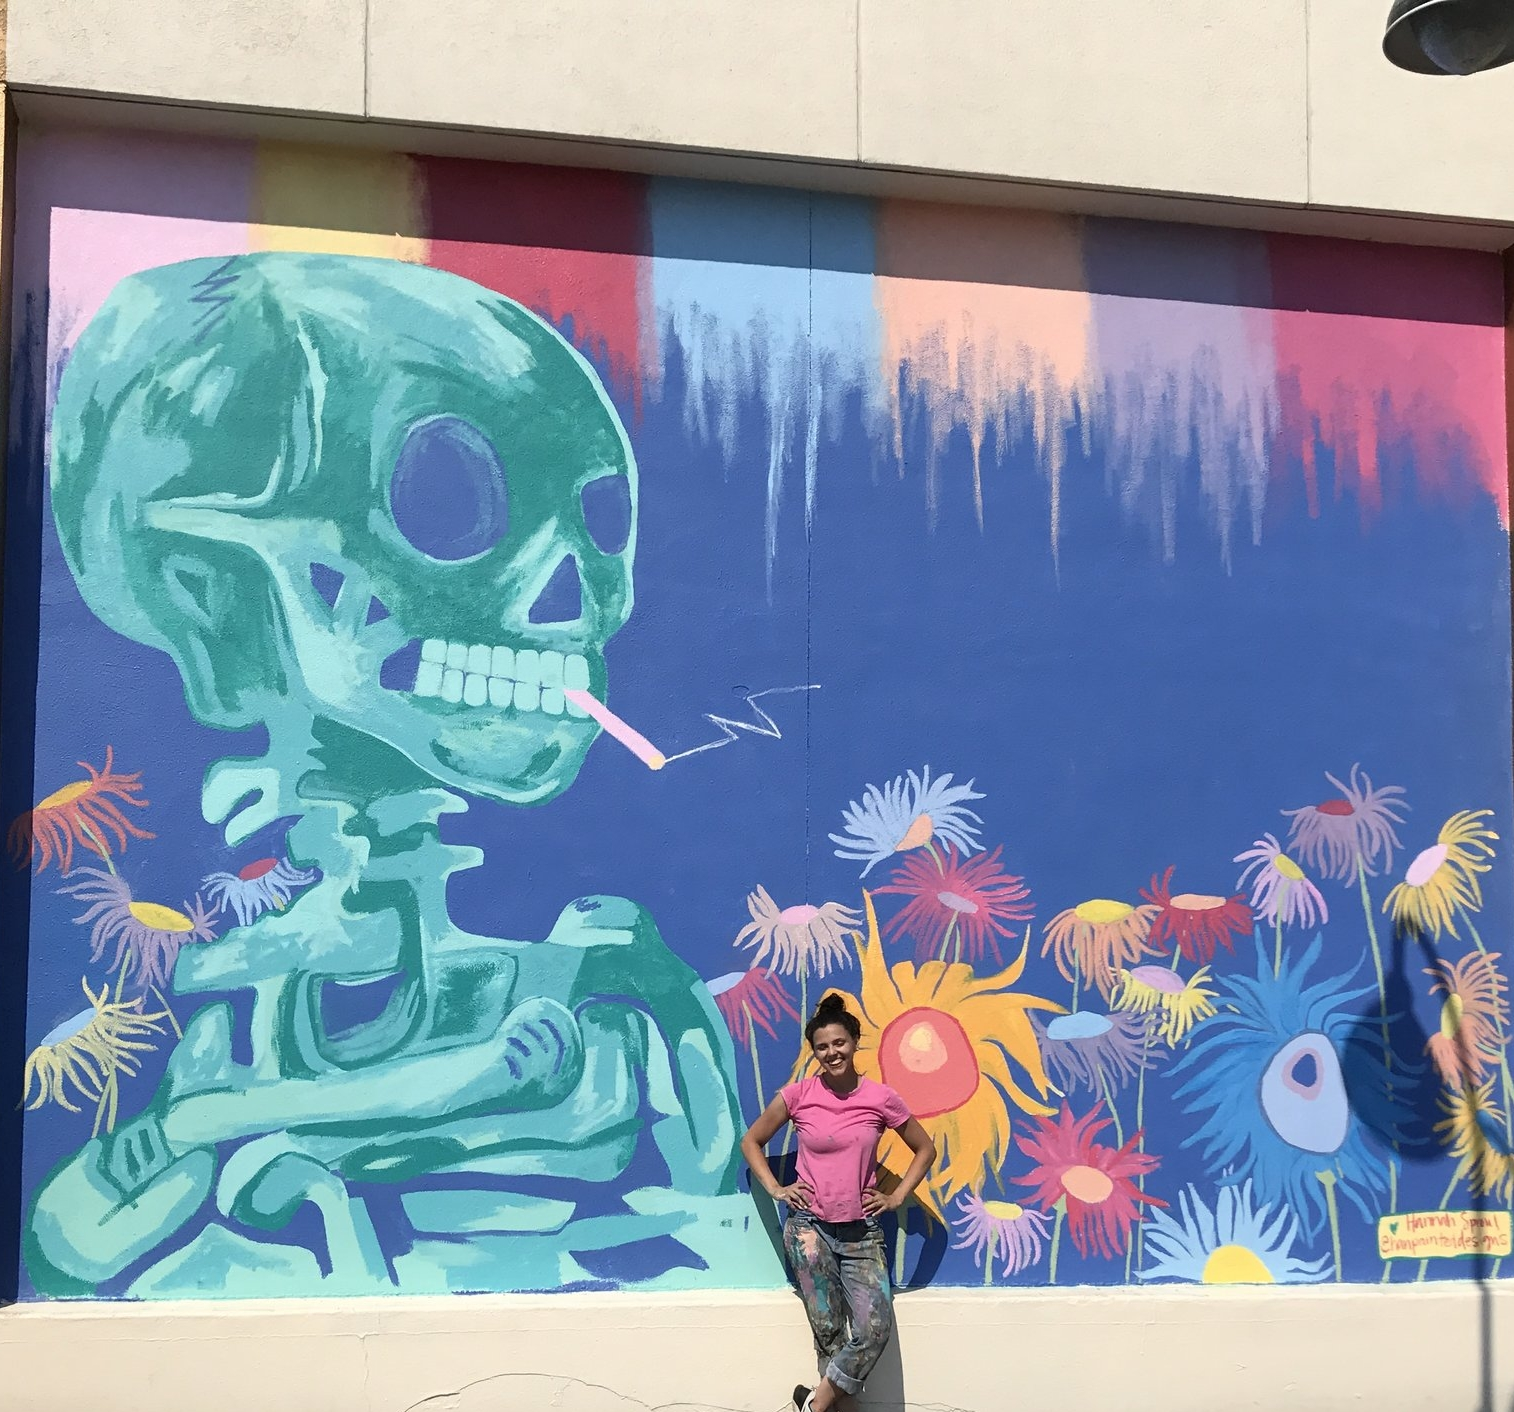 14x20ft mural, painted in 24 hours for Circus Circus in Reno, NV.